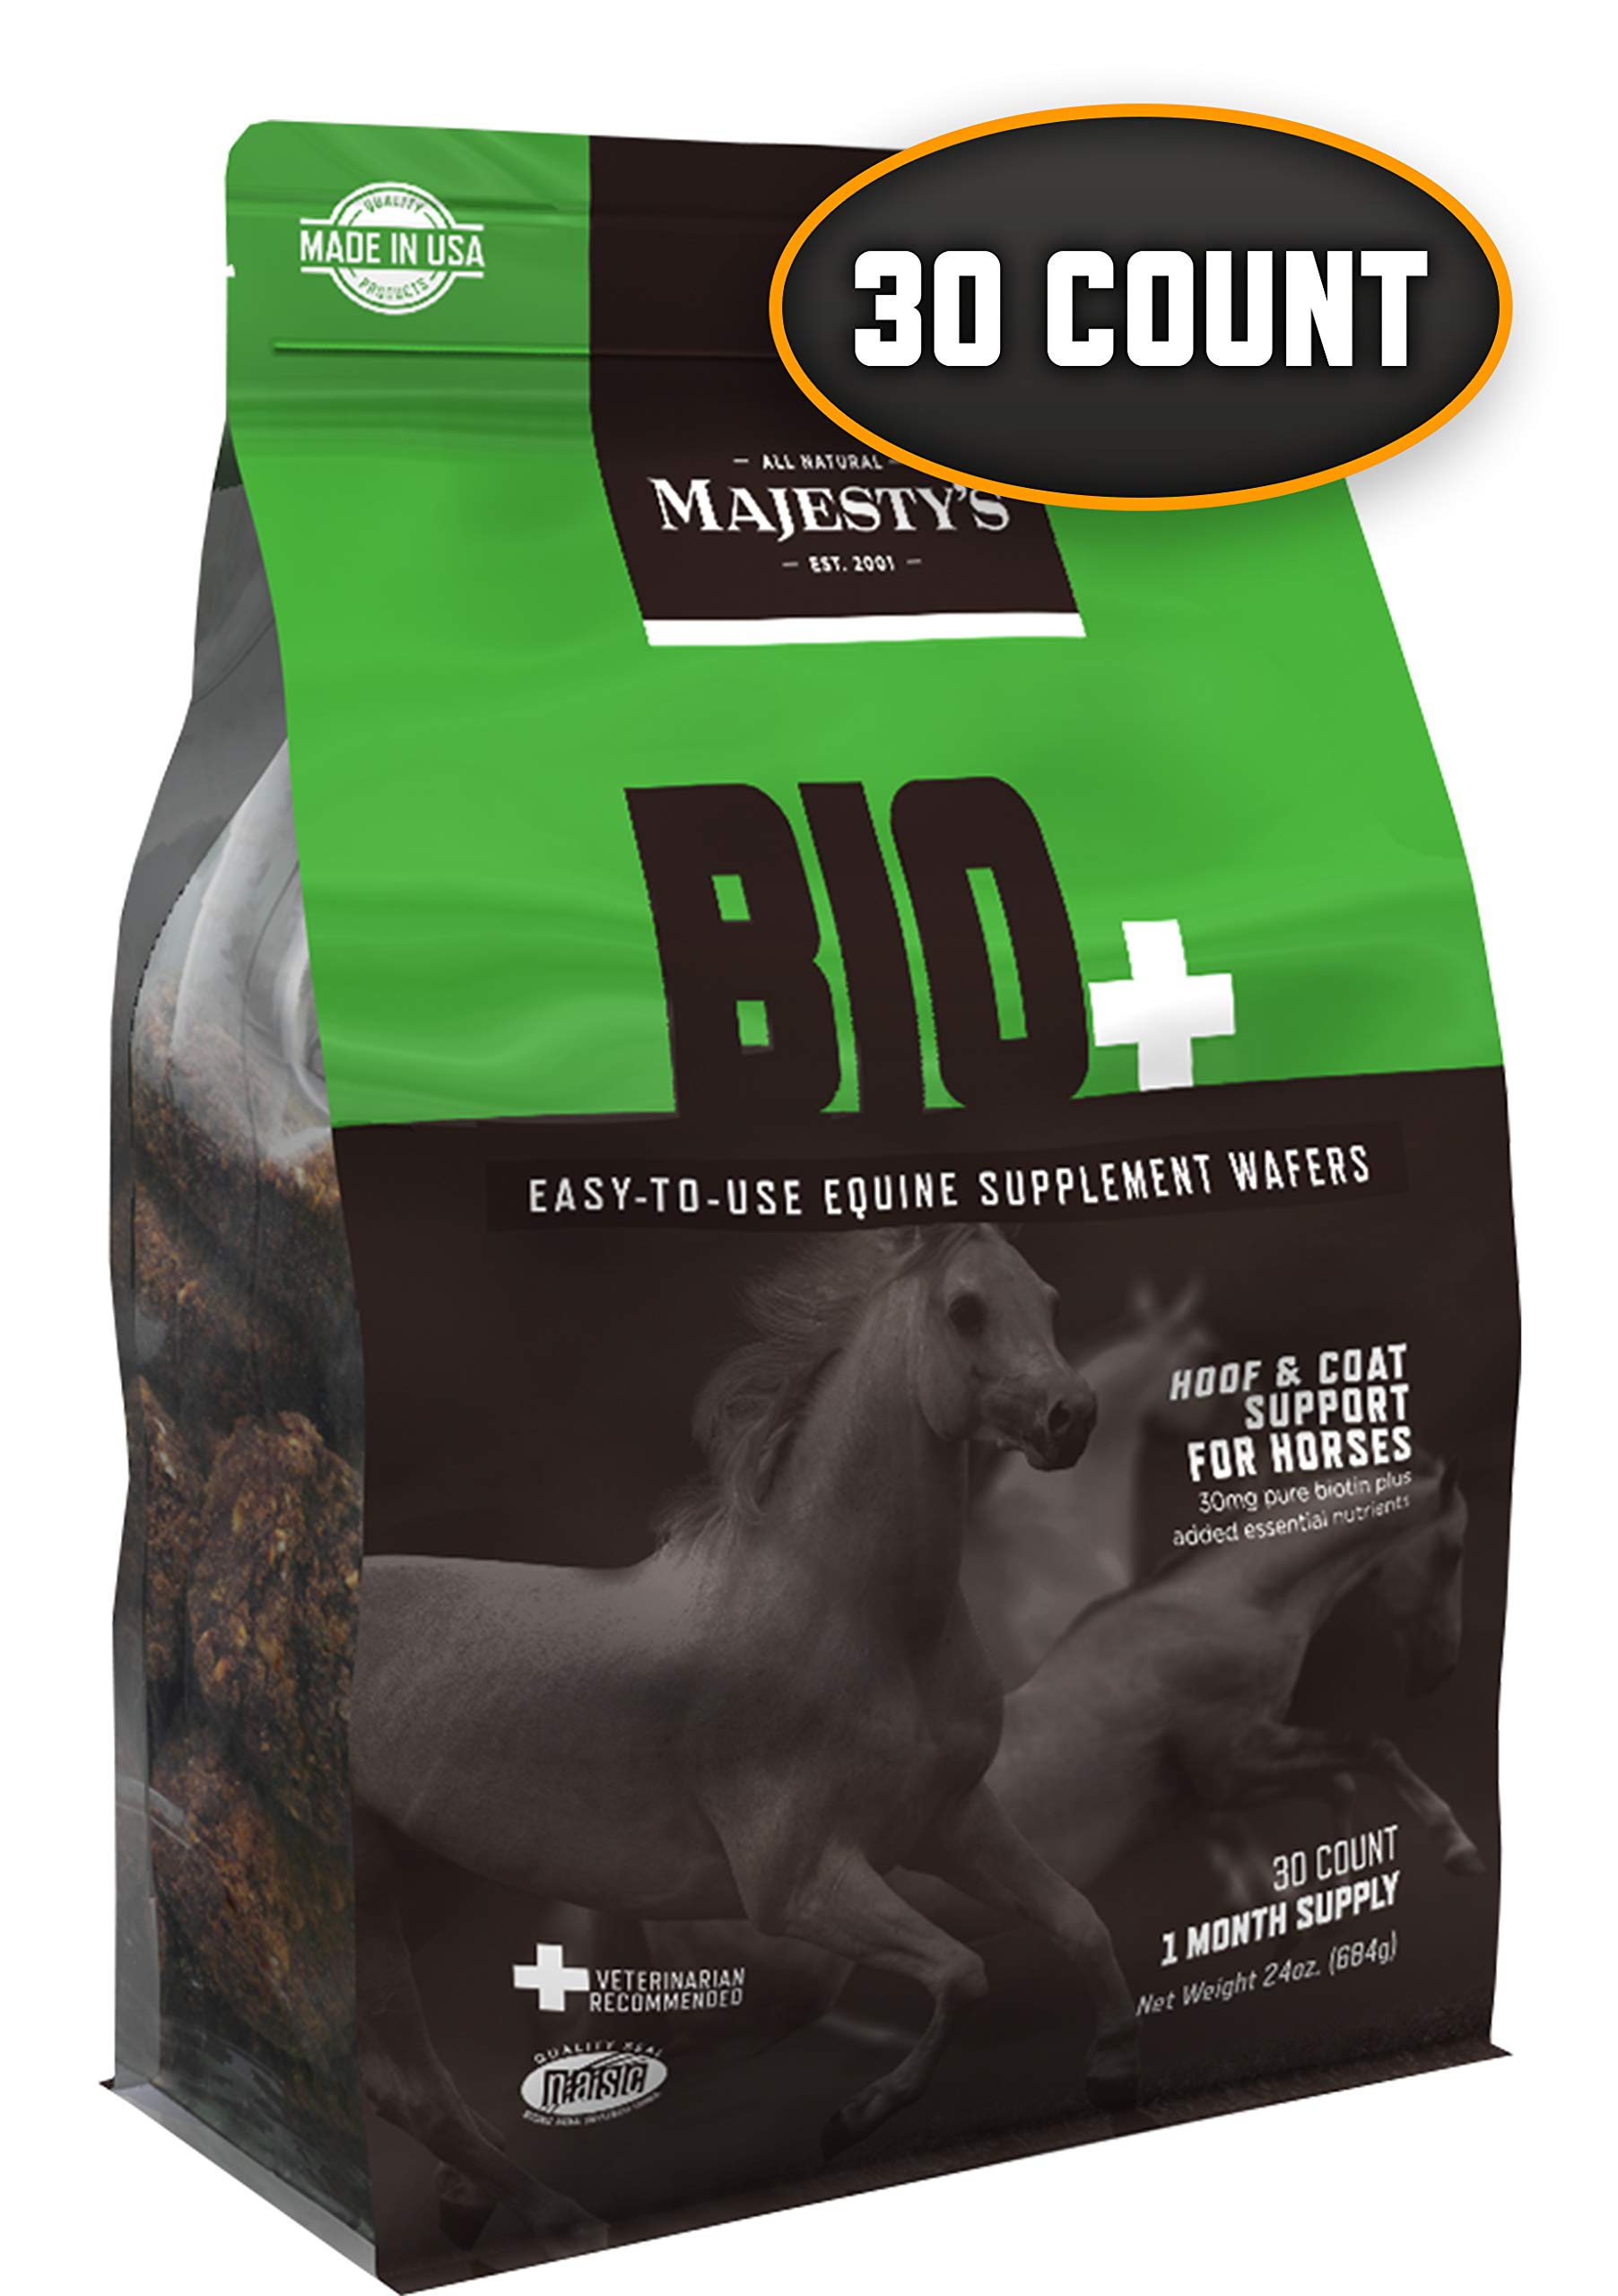 Majesty's Biotin Wafers - Superior Horse / Equine Hoof and Coat Support Supplement - Copper, Zinc, Lysine, Methionine -  30 Count (1 Month Supply) by Majesty's